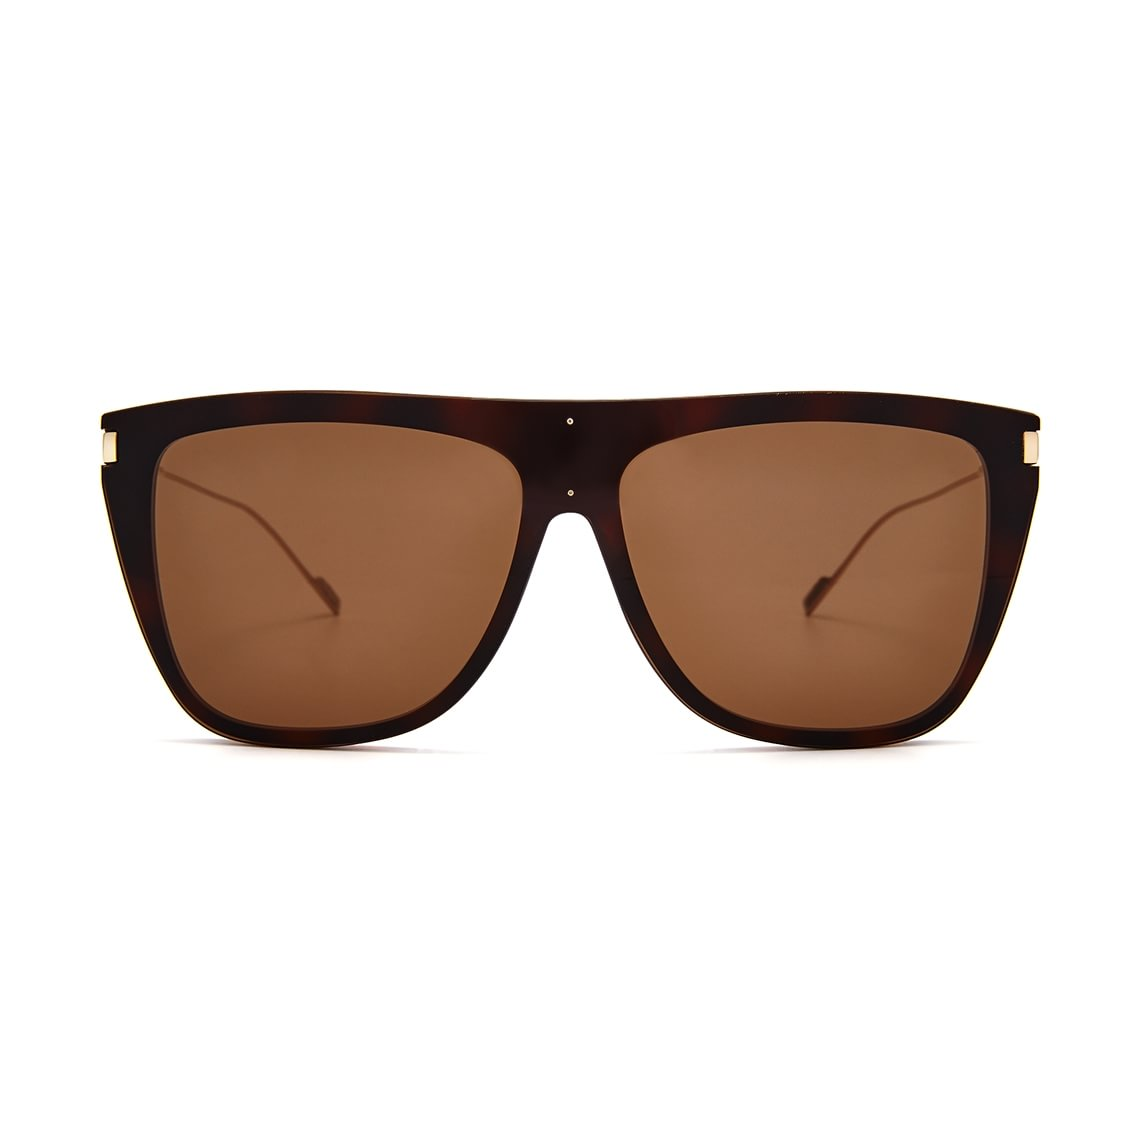 Saint Laurent SL 1 T 002